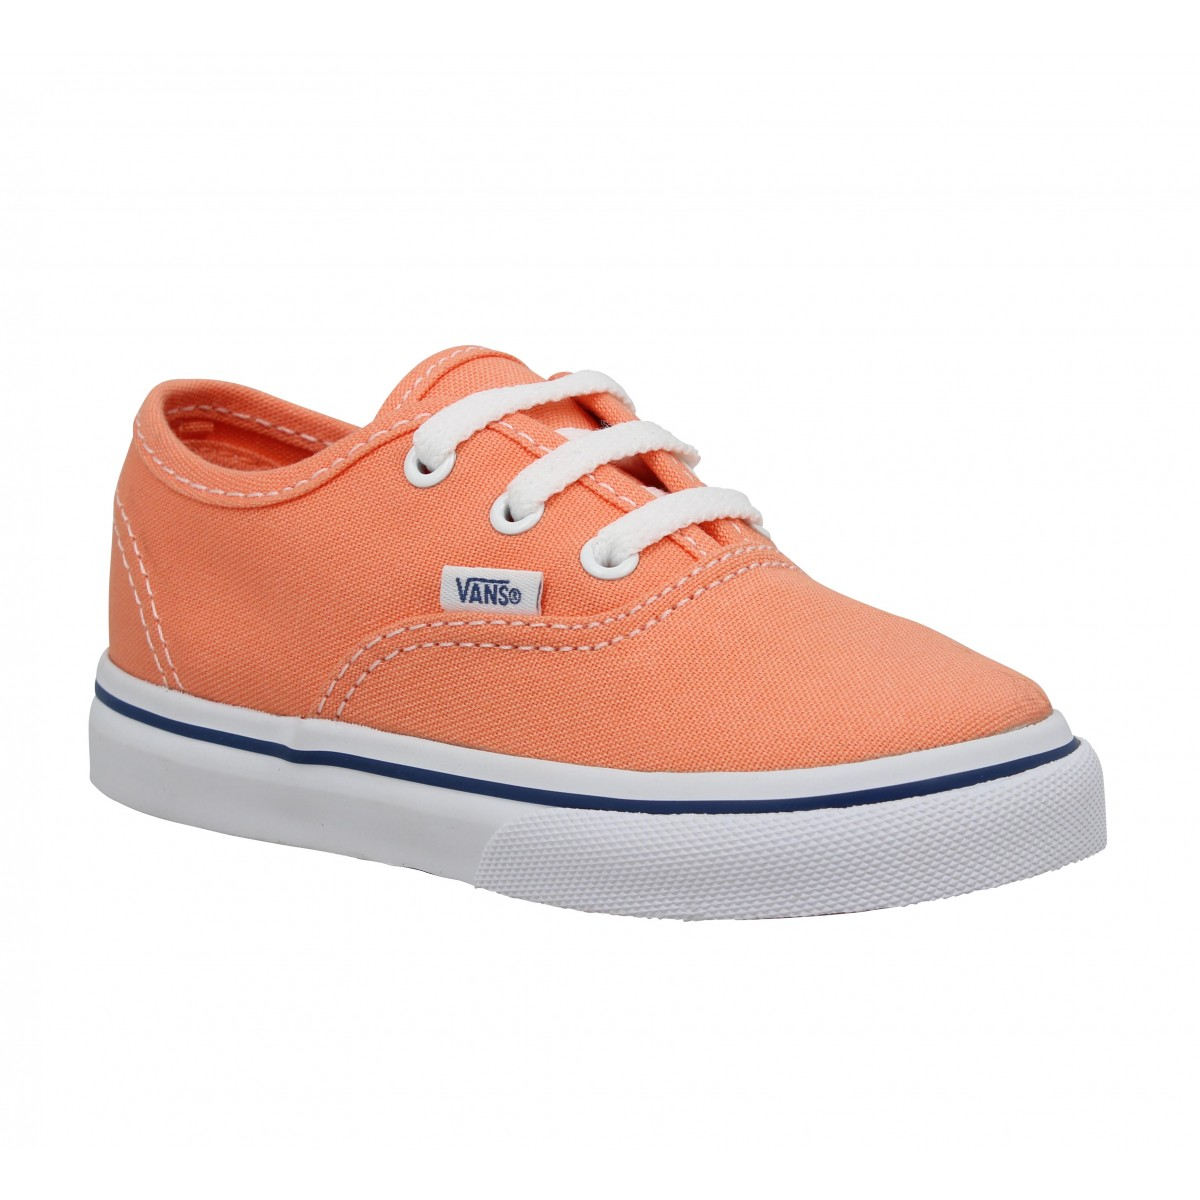 Baskets VANS Authentic toile Enfant Melon